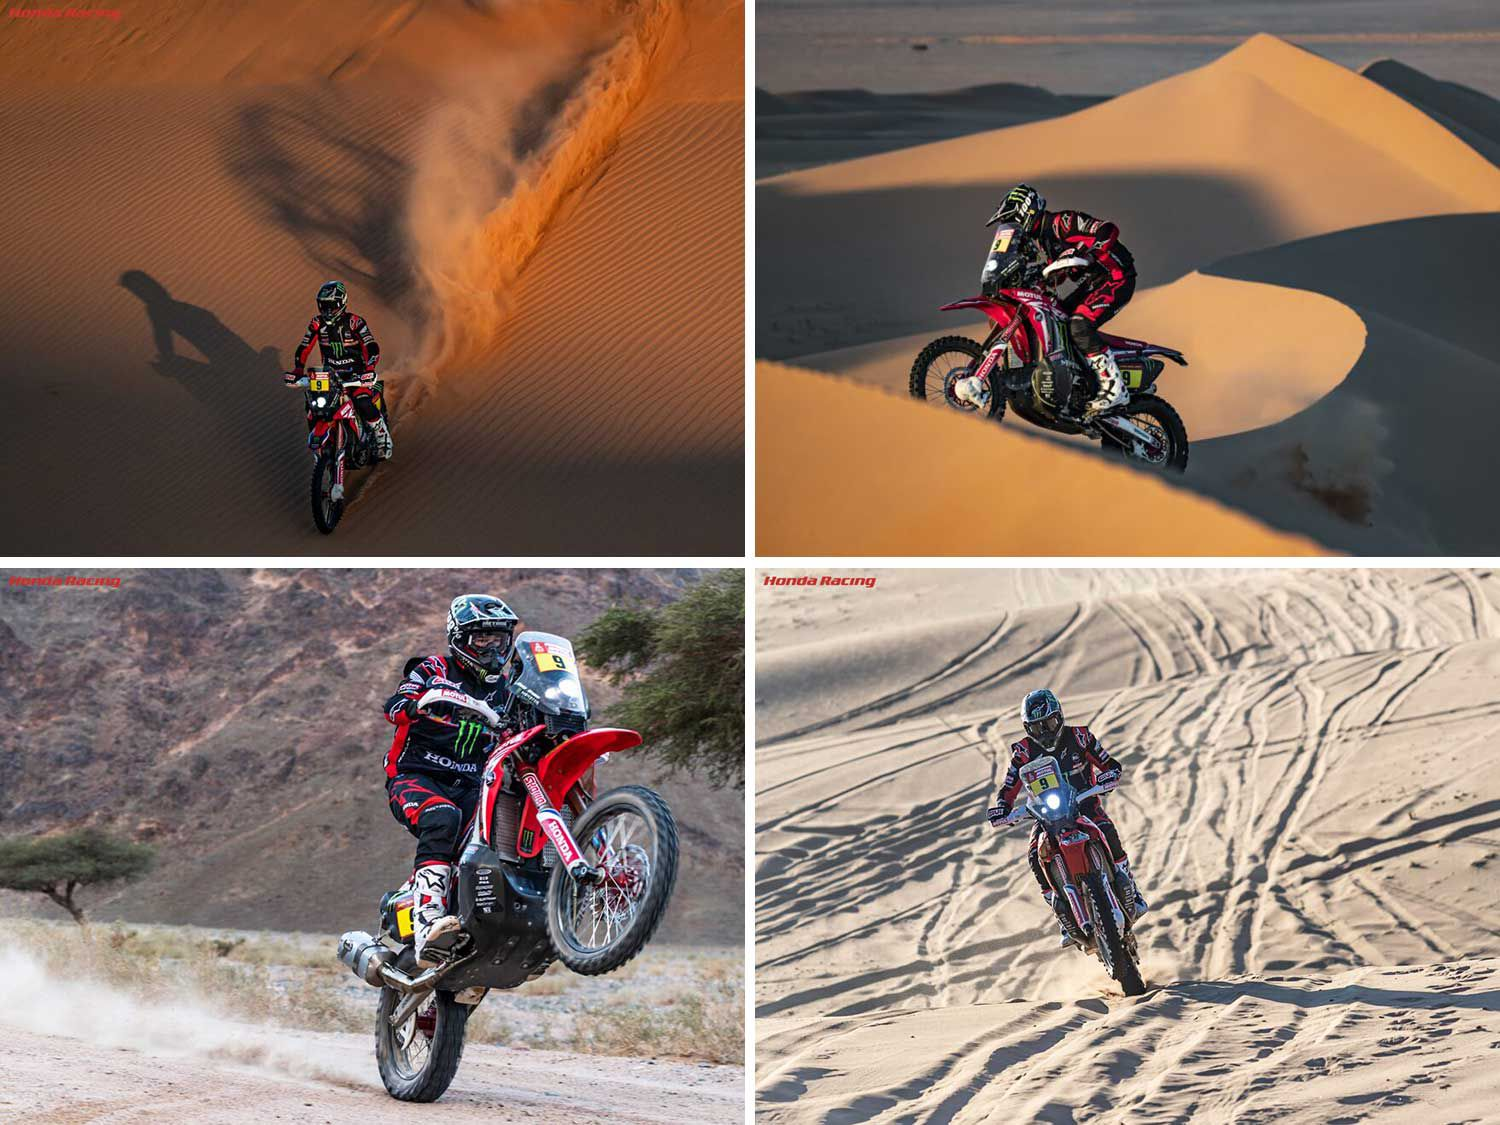 <strong>Clockwise from top left:</strong> Twenty-eight-year-old Brabec (USA) battling his way during the 2020 Dakar Rally, on board his Monster Honda CRF450X Rally; Monster Honda rider Brabec (USA) makes his way through the difficult deserts of Saudi Arabia during the 2020 Dakar Rally; Here is American Ricky Brabec on the way to winning the 2020 Dakar Rally. It is the first victory for Honda in 31 years and the first-ever win for an American rider.